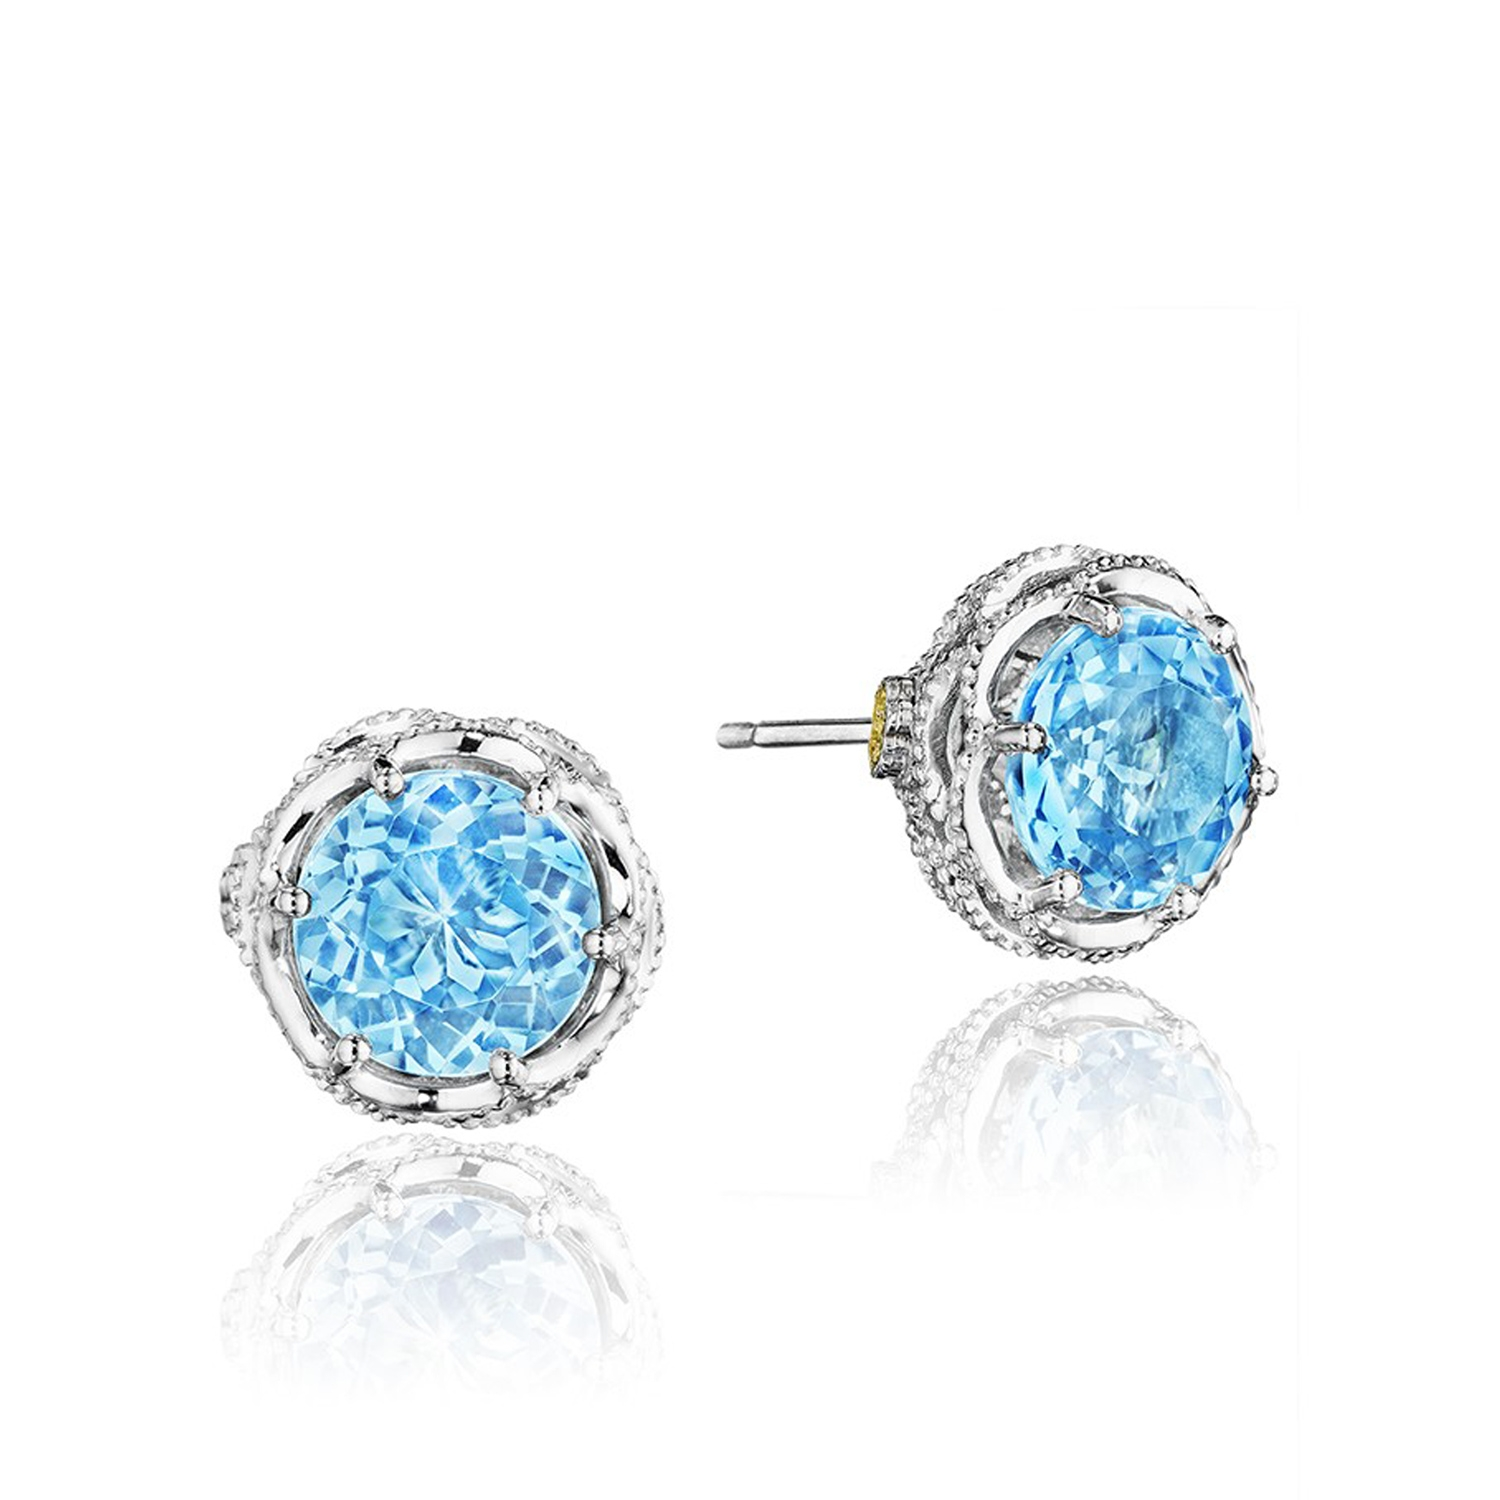 Tacori SE10545 Island Rains Earrings